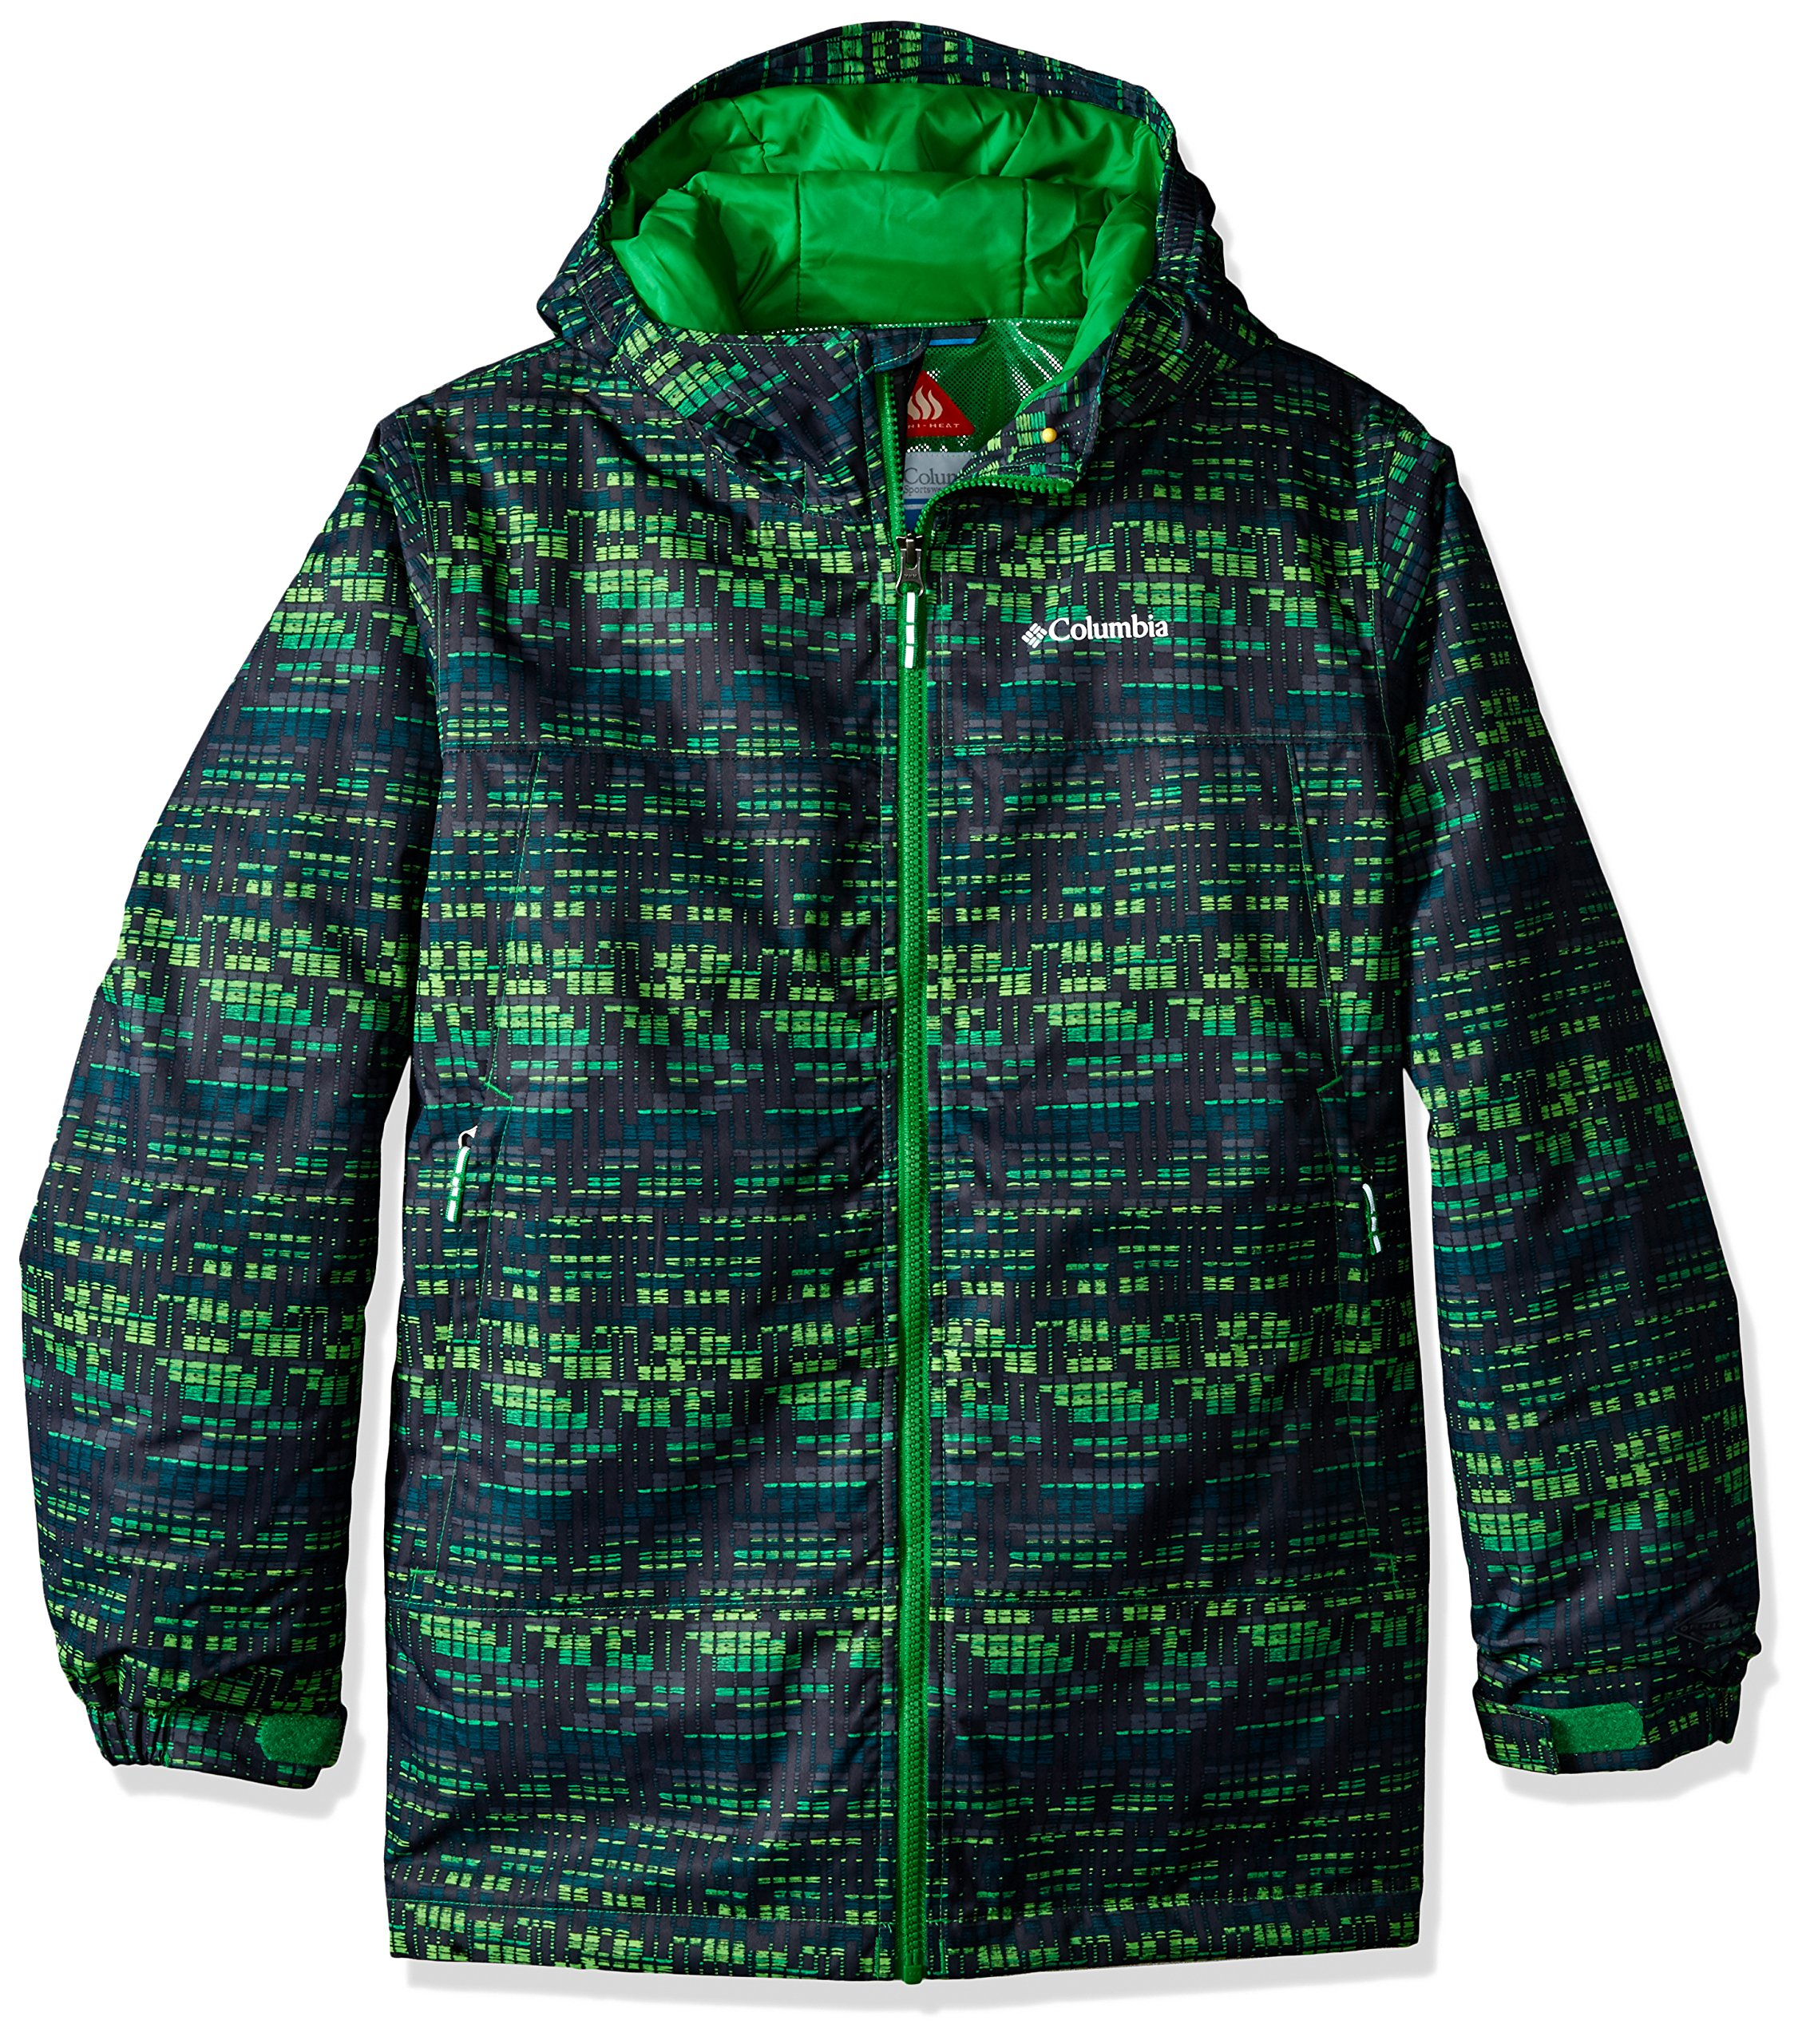 Columbia Boys Wrecktangle Jacket, Small, Cyber Green Matrix Print by Columbia